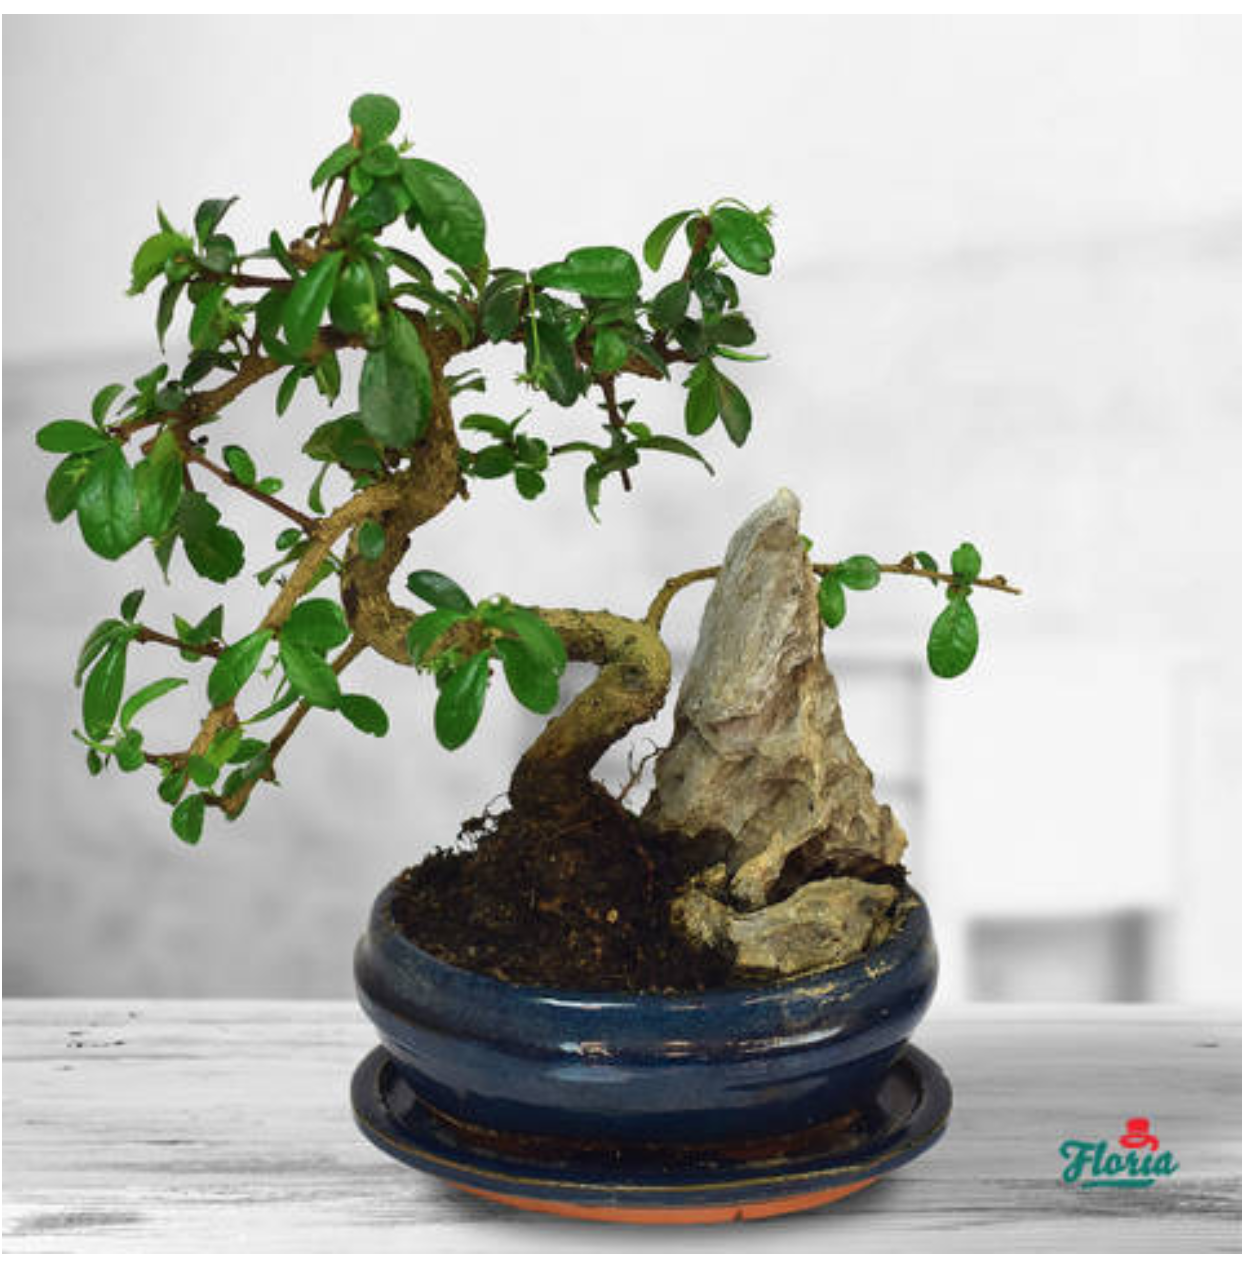 Bonsai - Plante de apartament